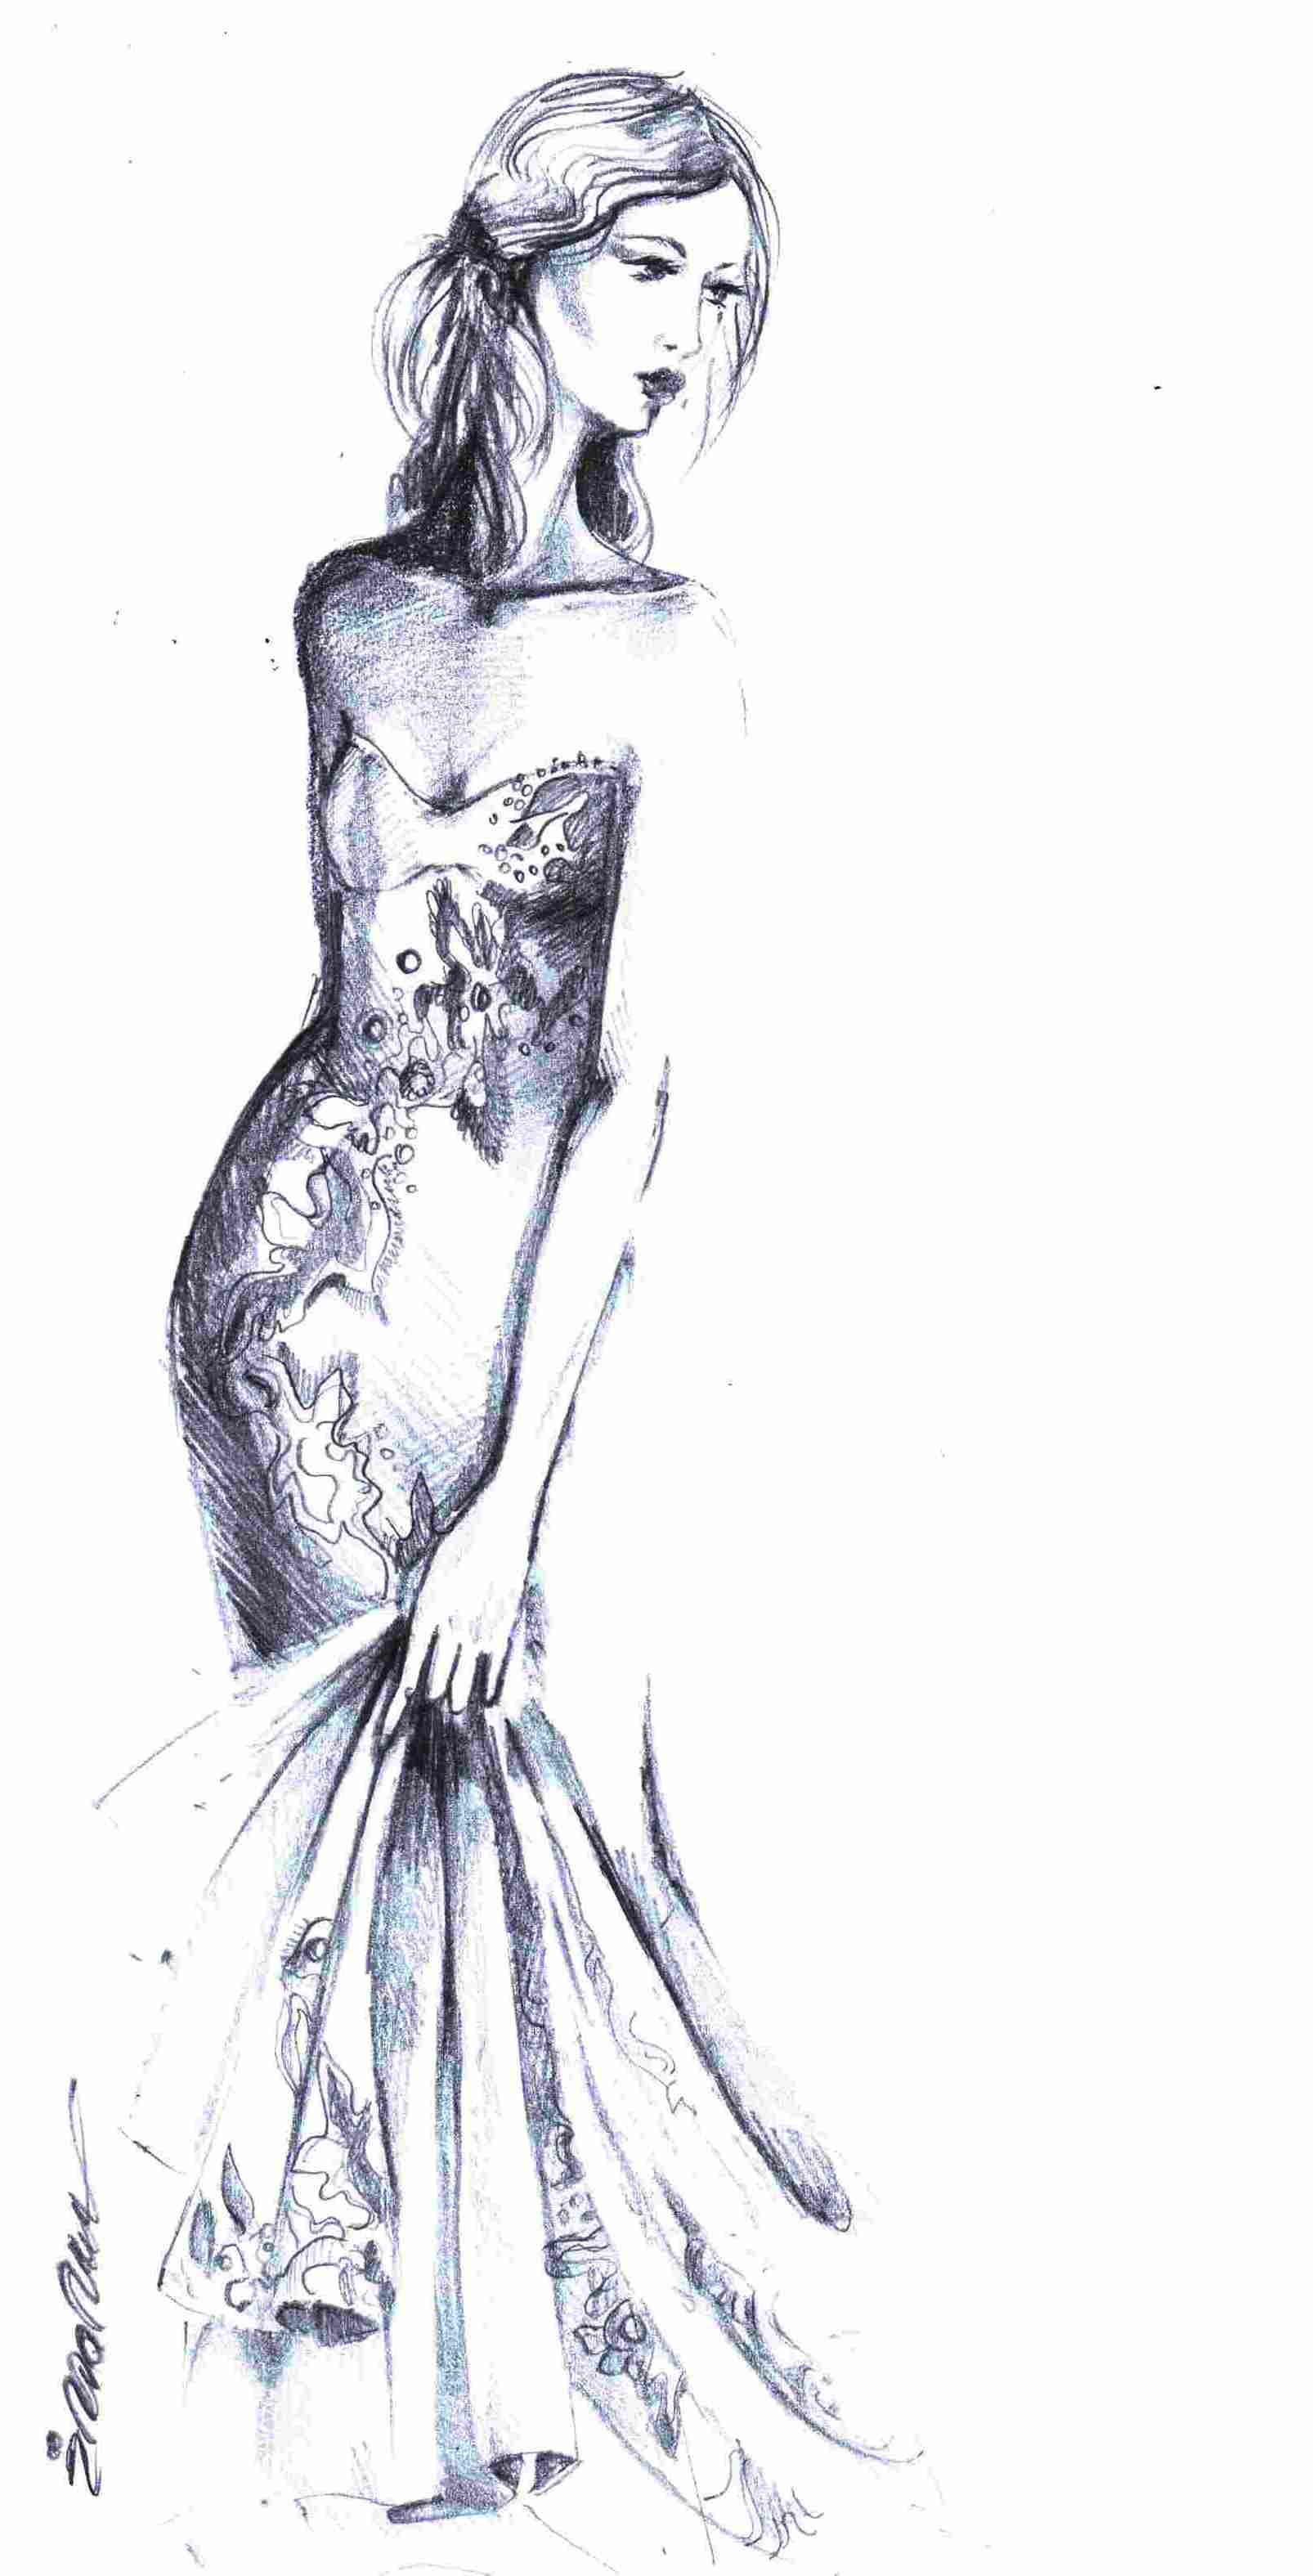 Fashion sketches new fashion sketches - Fashion Sketches Frame This Sketch And Hang On Your Wall For A Fashionista Feel